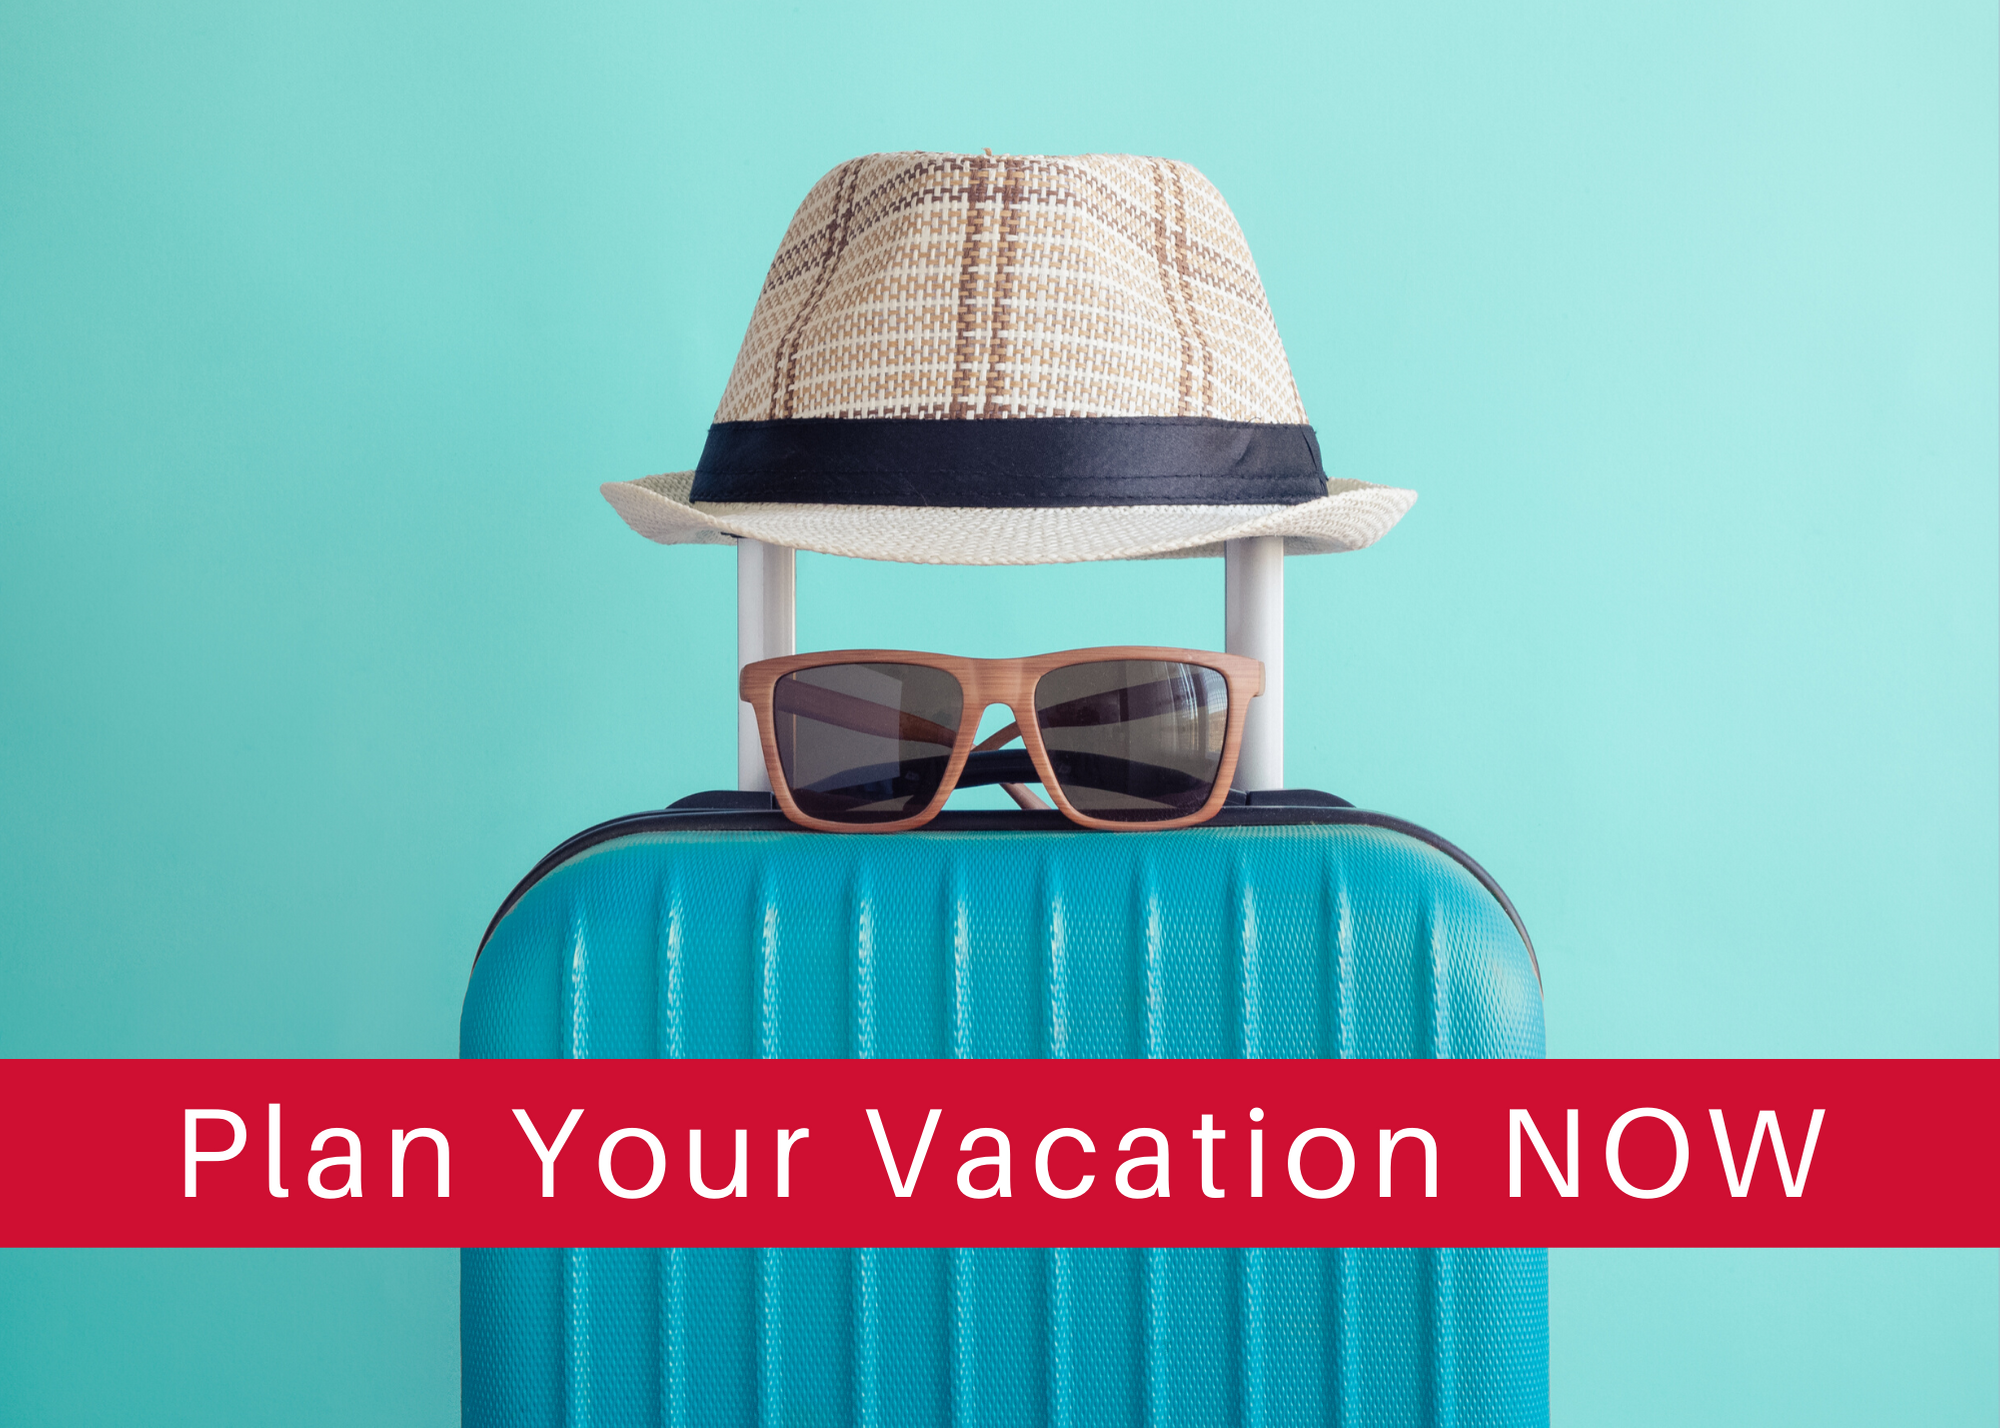 Plan Your Vacation Now - suitcase